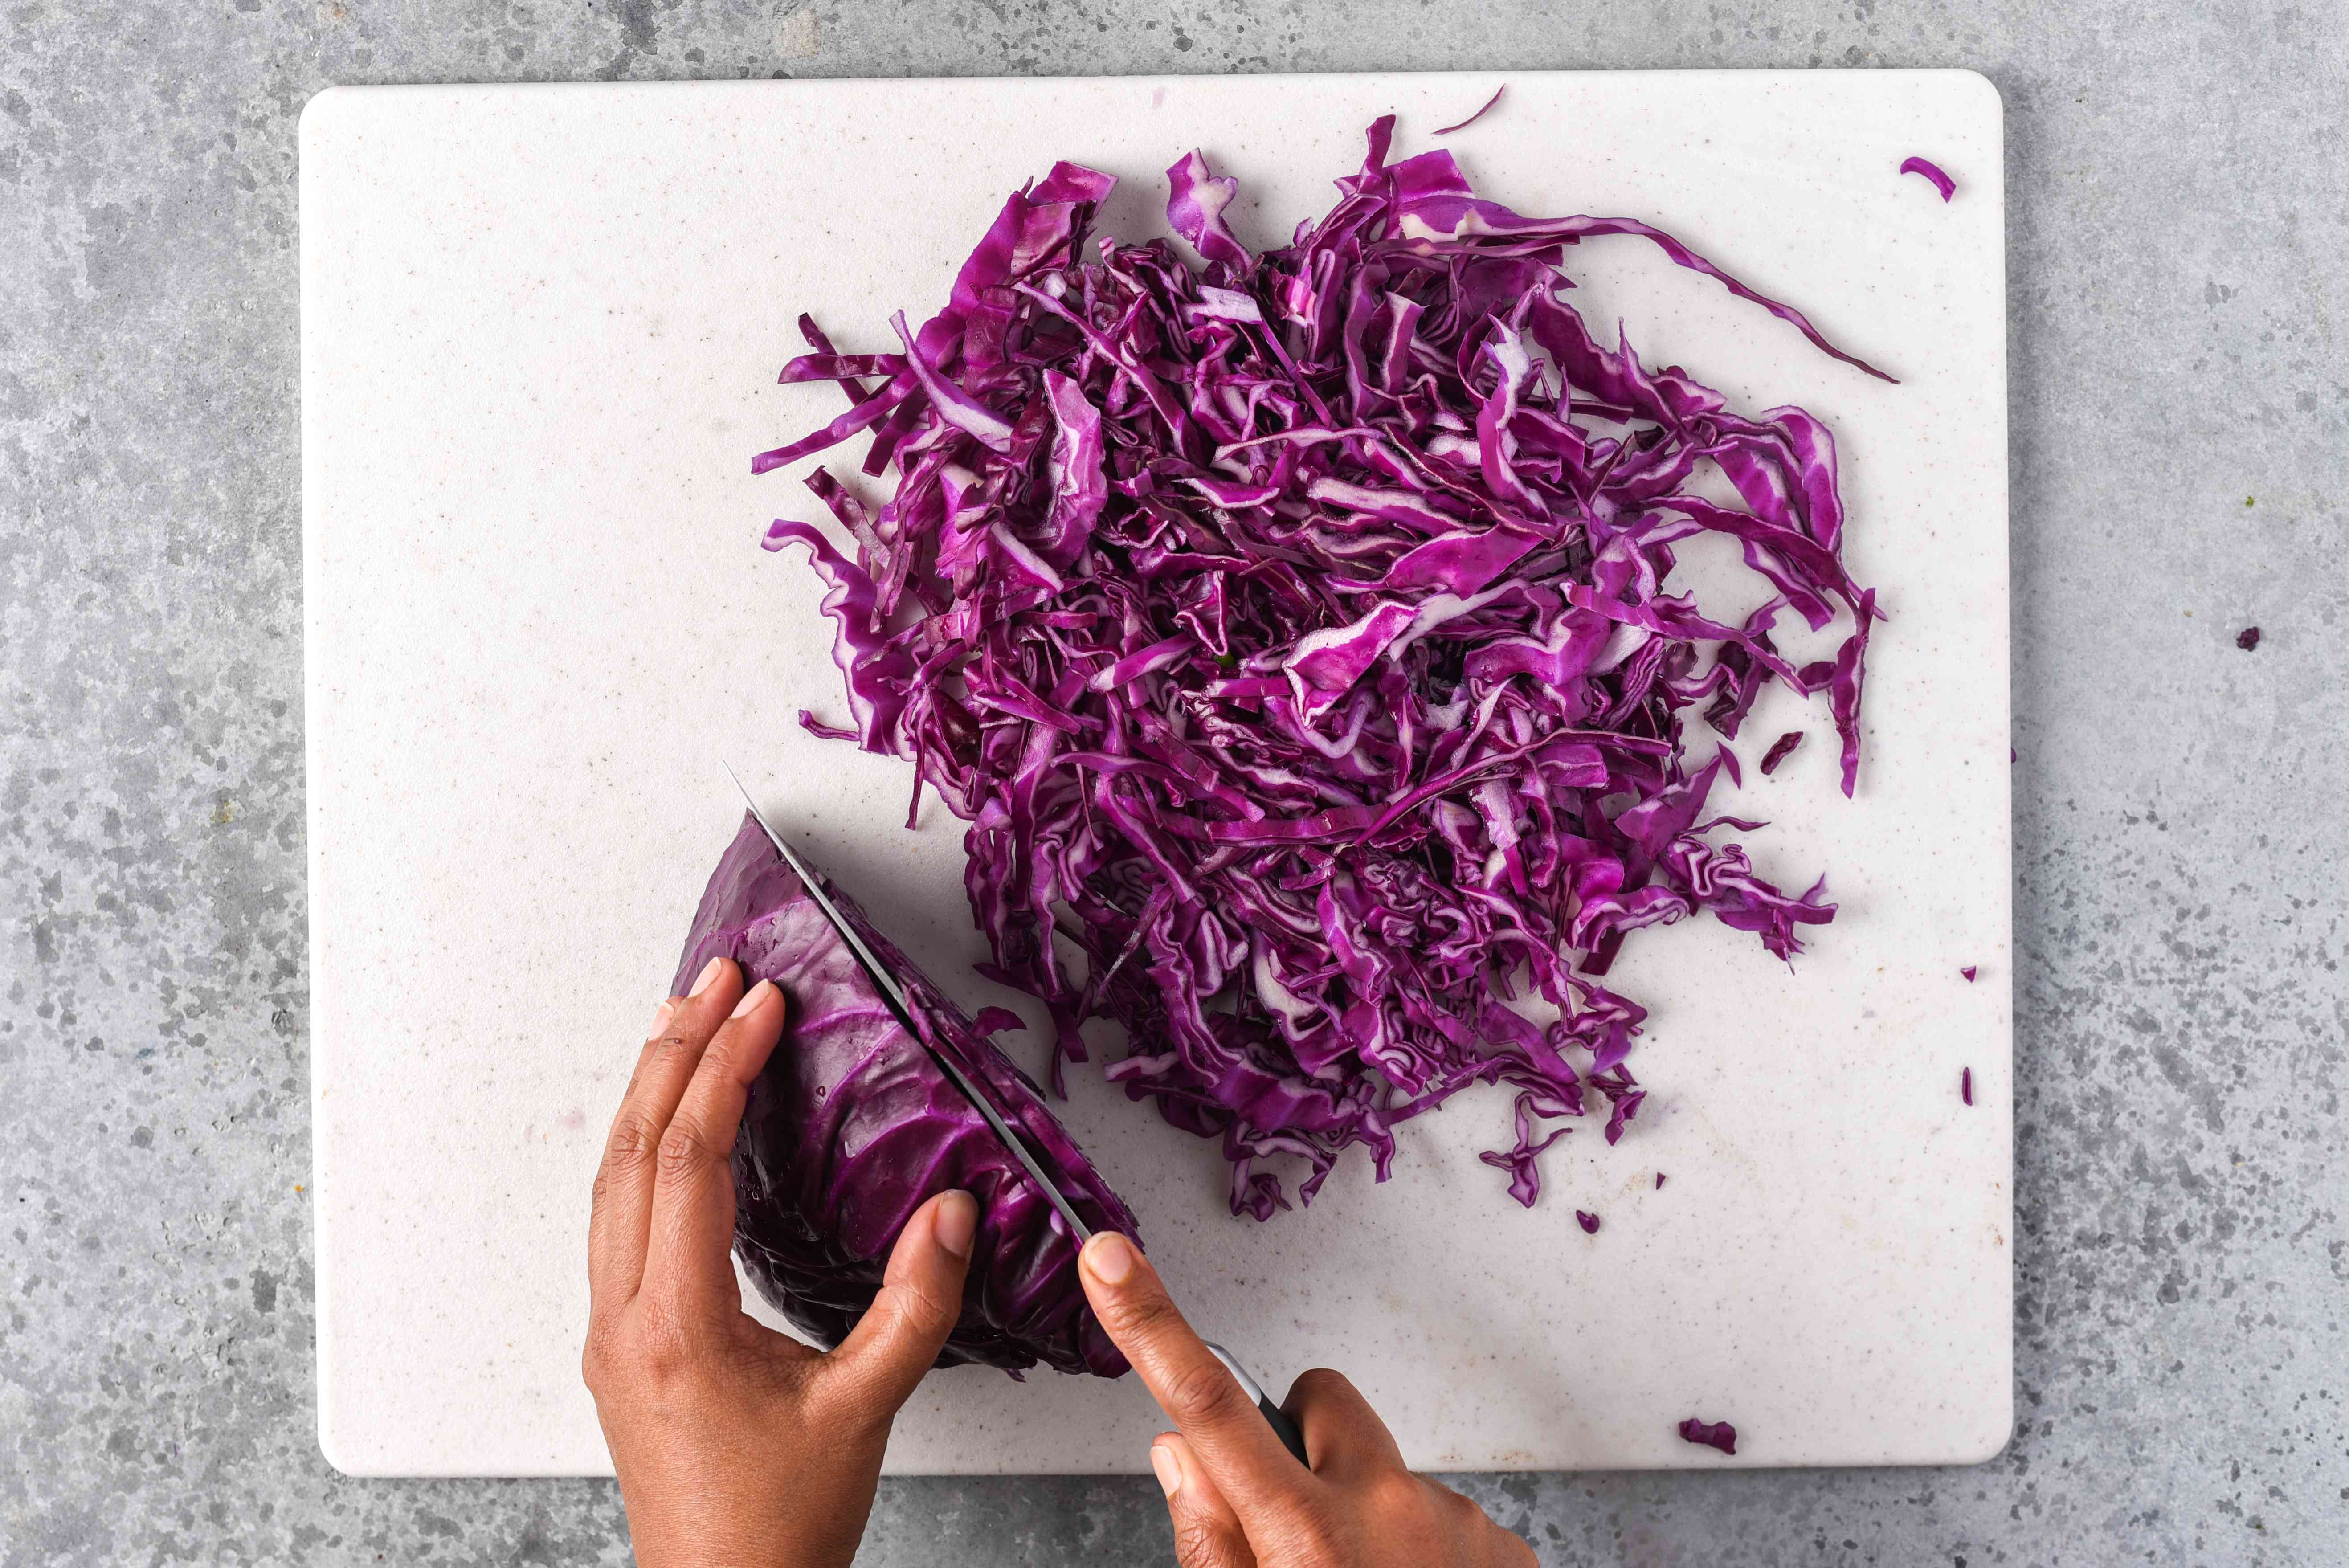 red cabbage cut into thin pieces